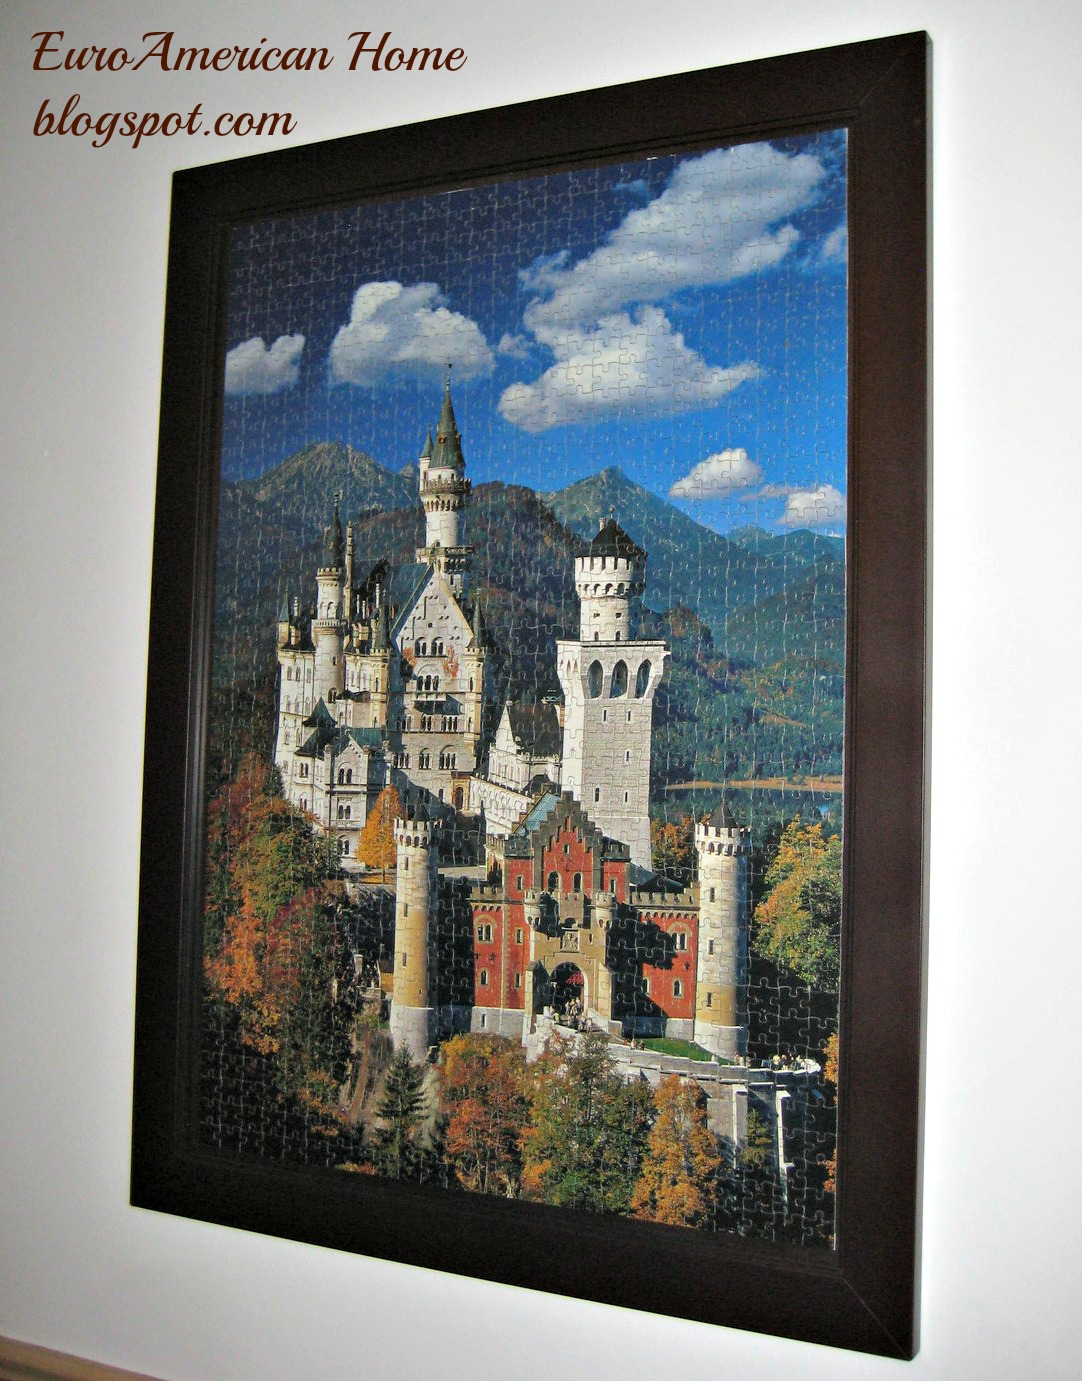 Euroamerican Home Day 88 How To Frame A Puzzle